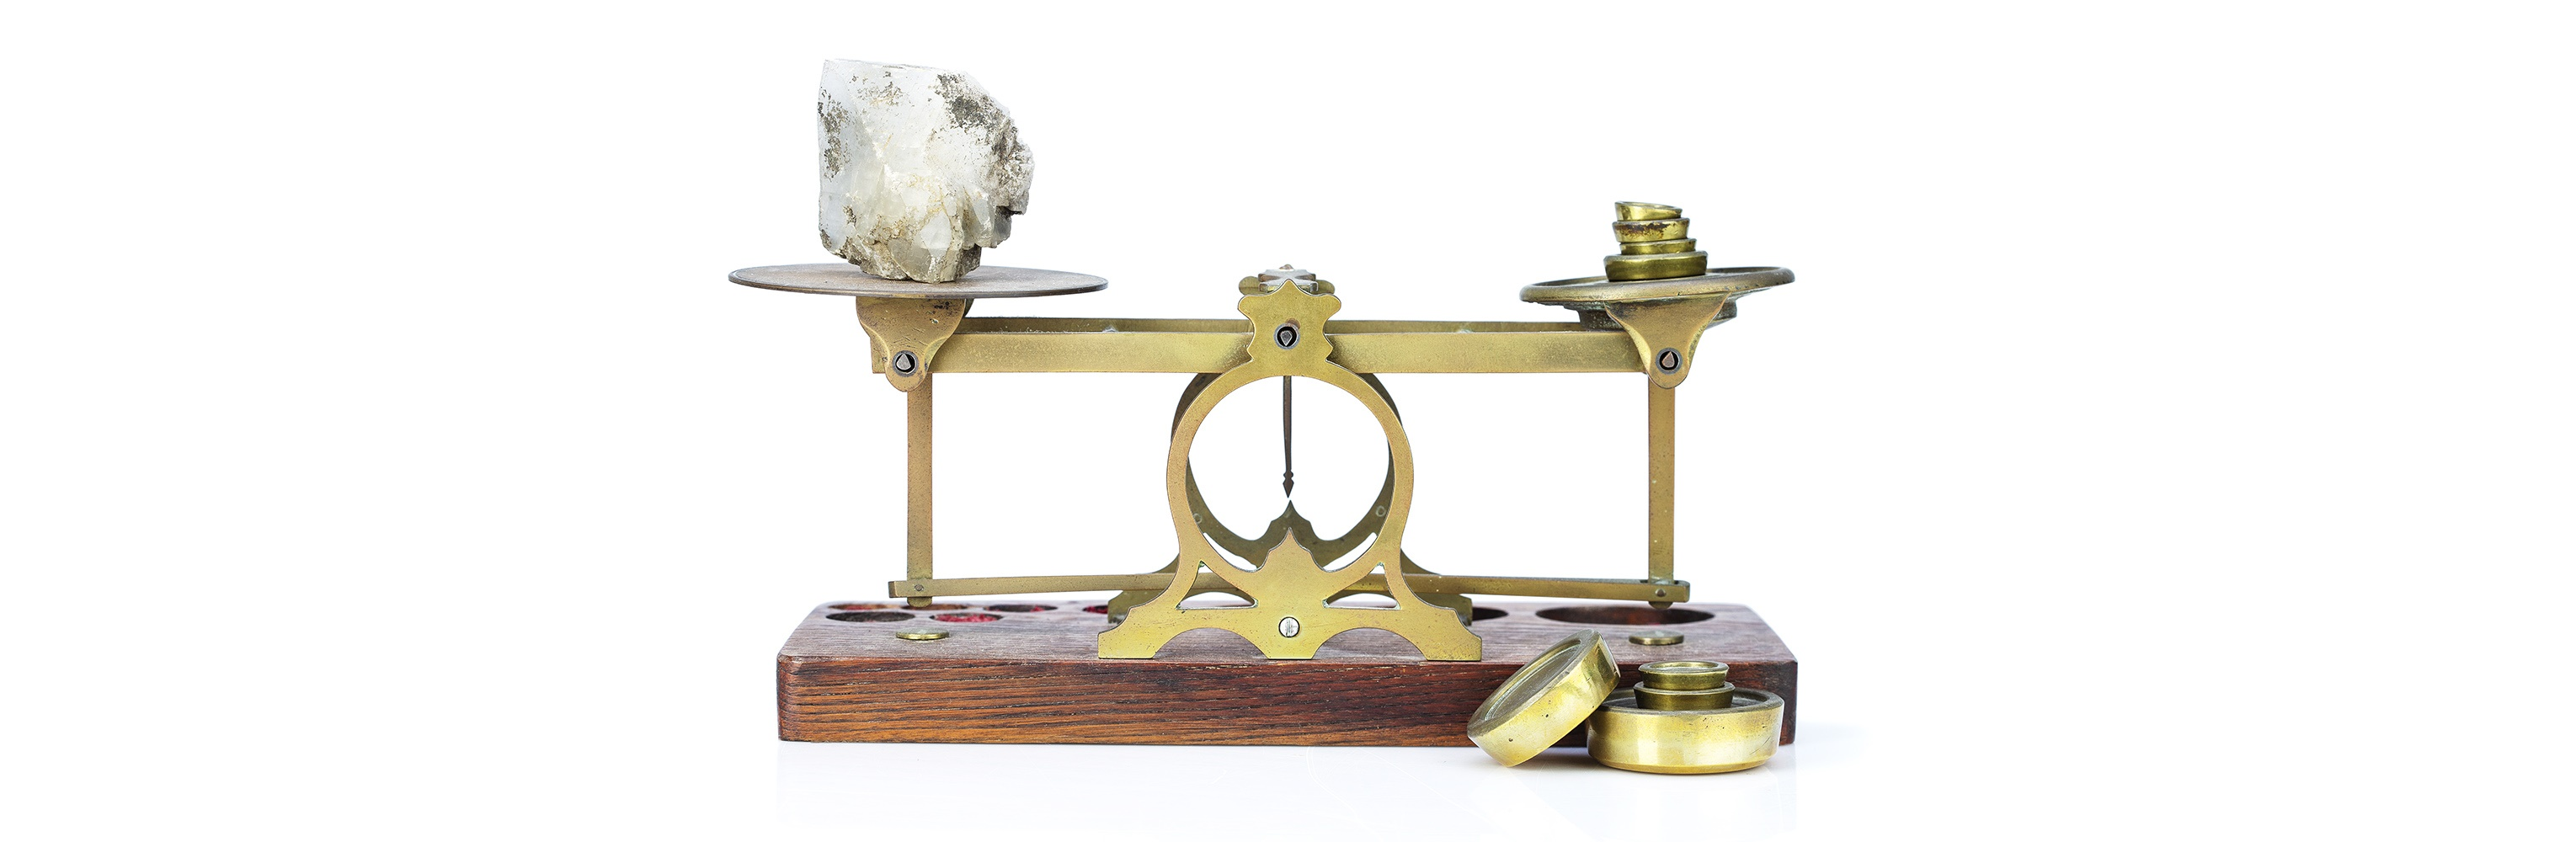 A set of scales with a piece of rock or crystal and brass weoghts on the other side. Both sides are in a state of balance